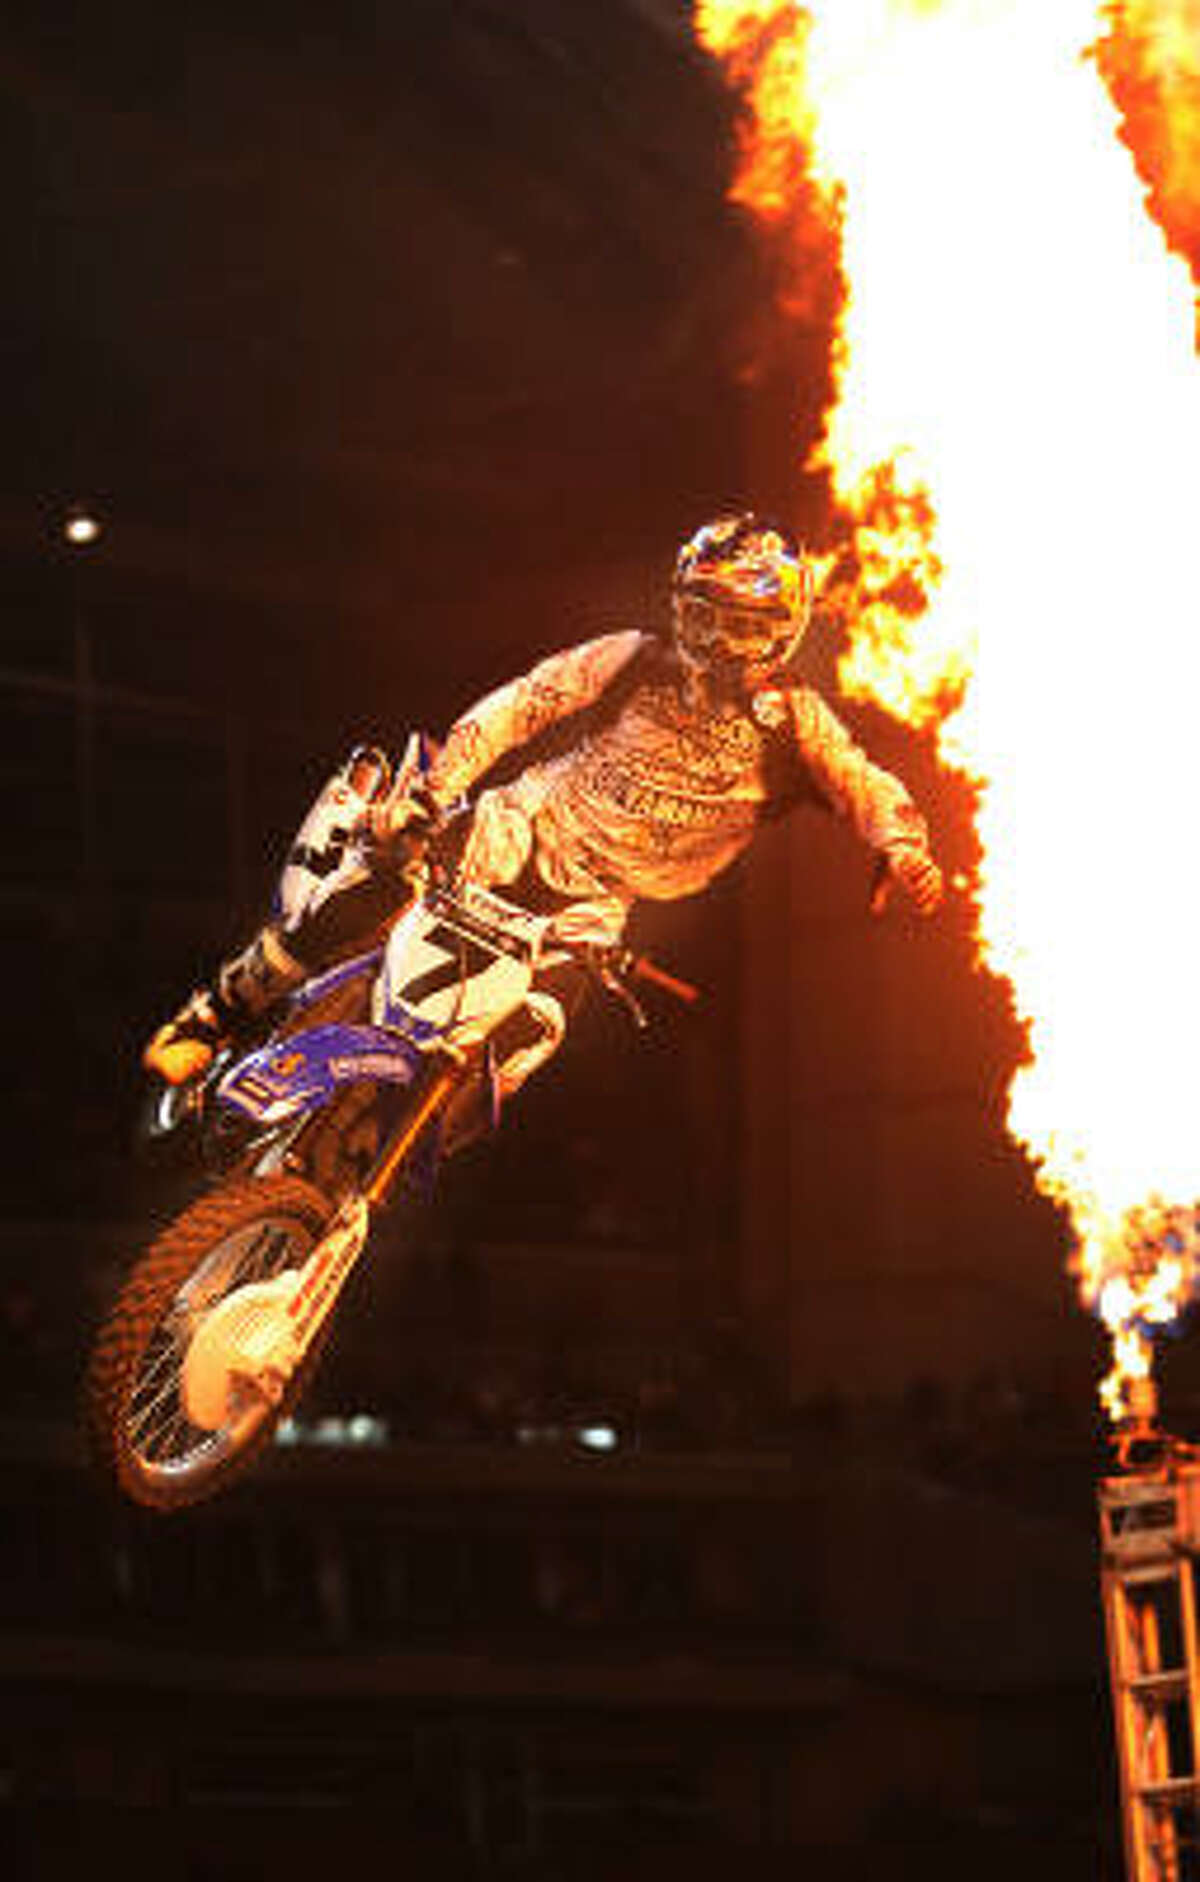 James M. Stewart wins the Supercross main event at the 2009 Monster Energy AMA Supercross in Houston.